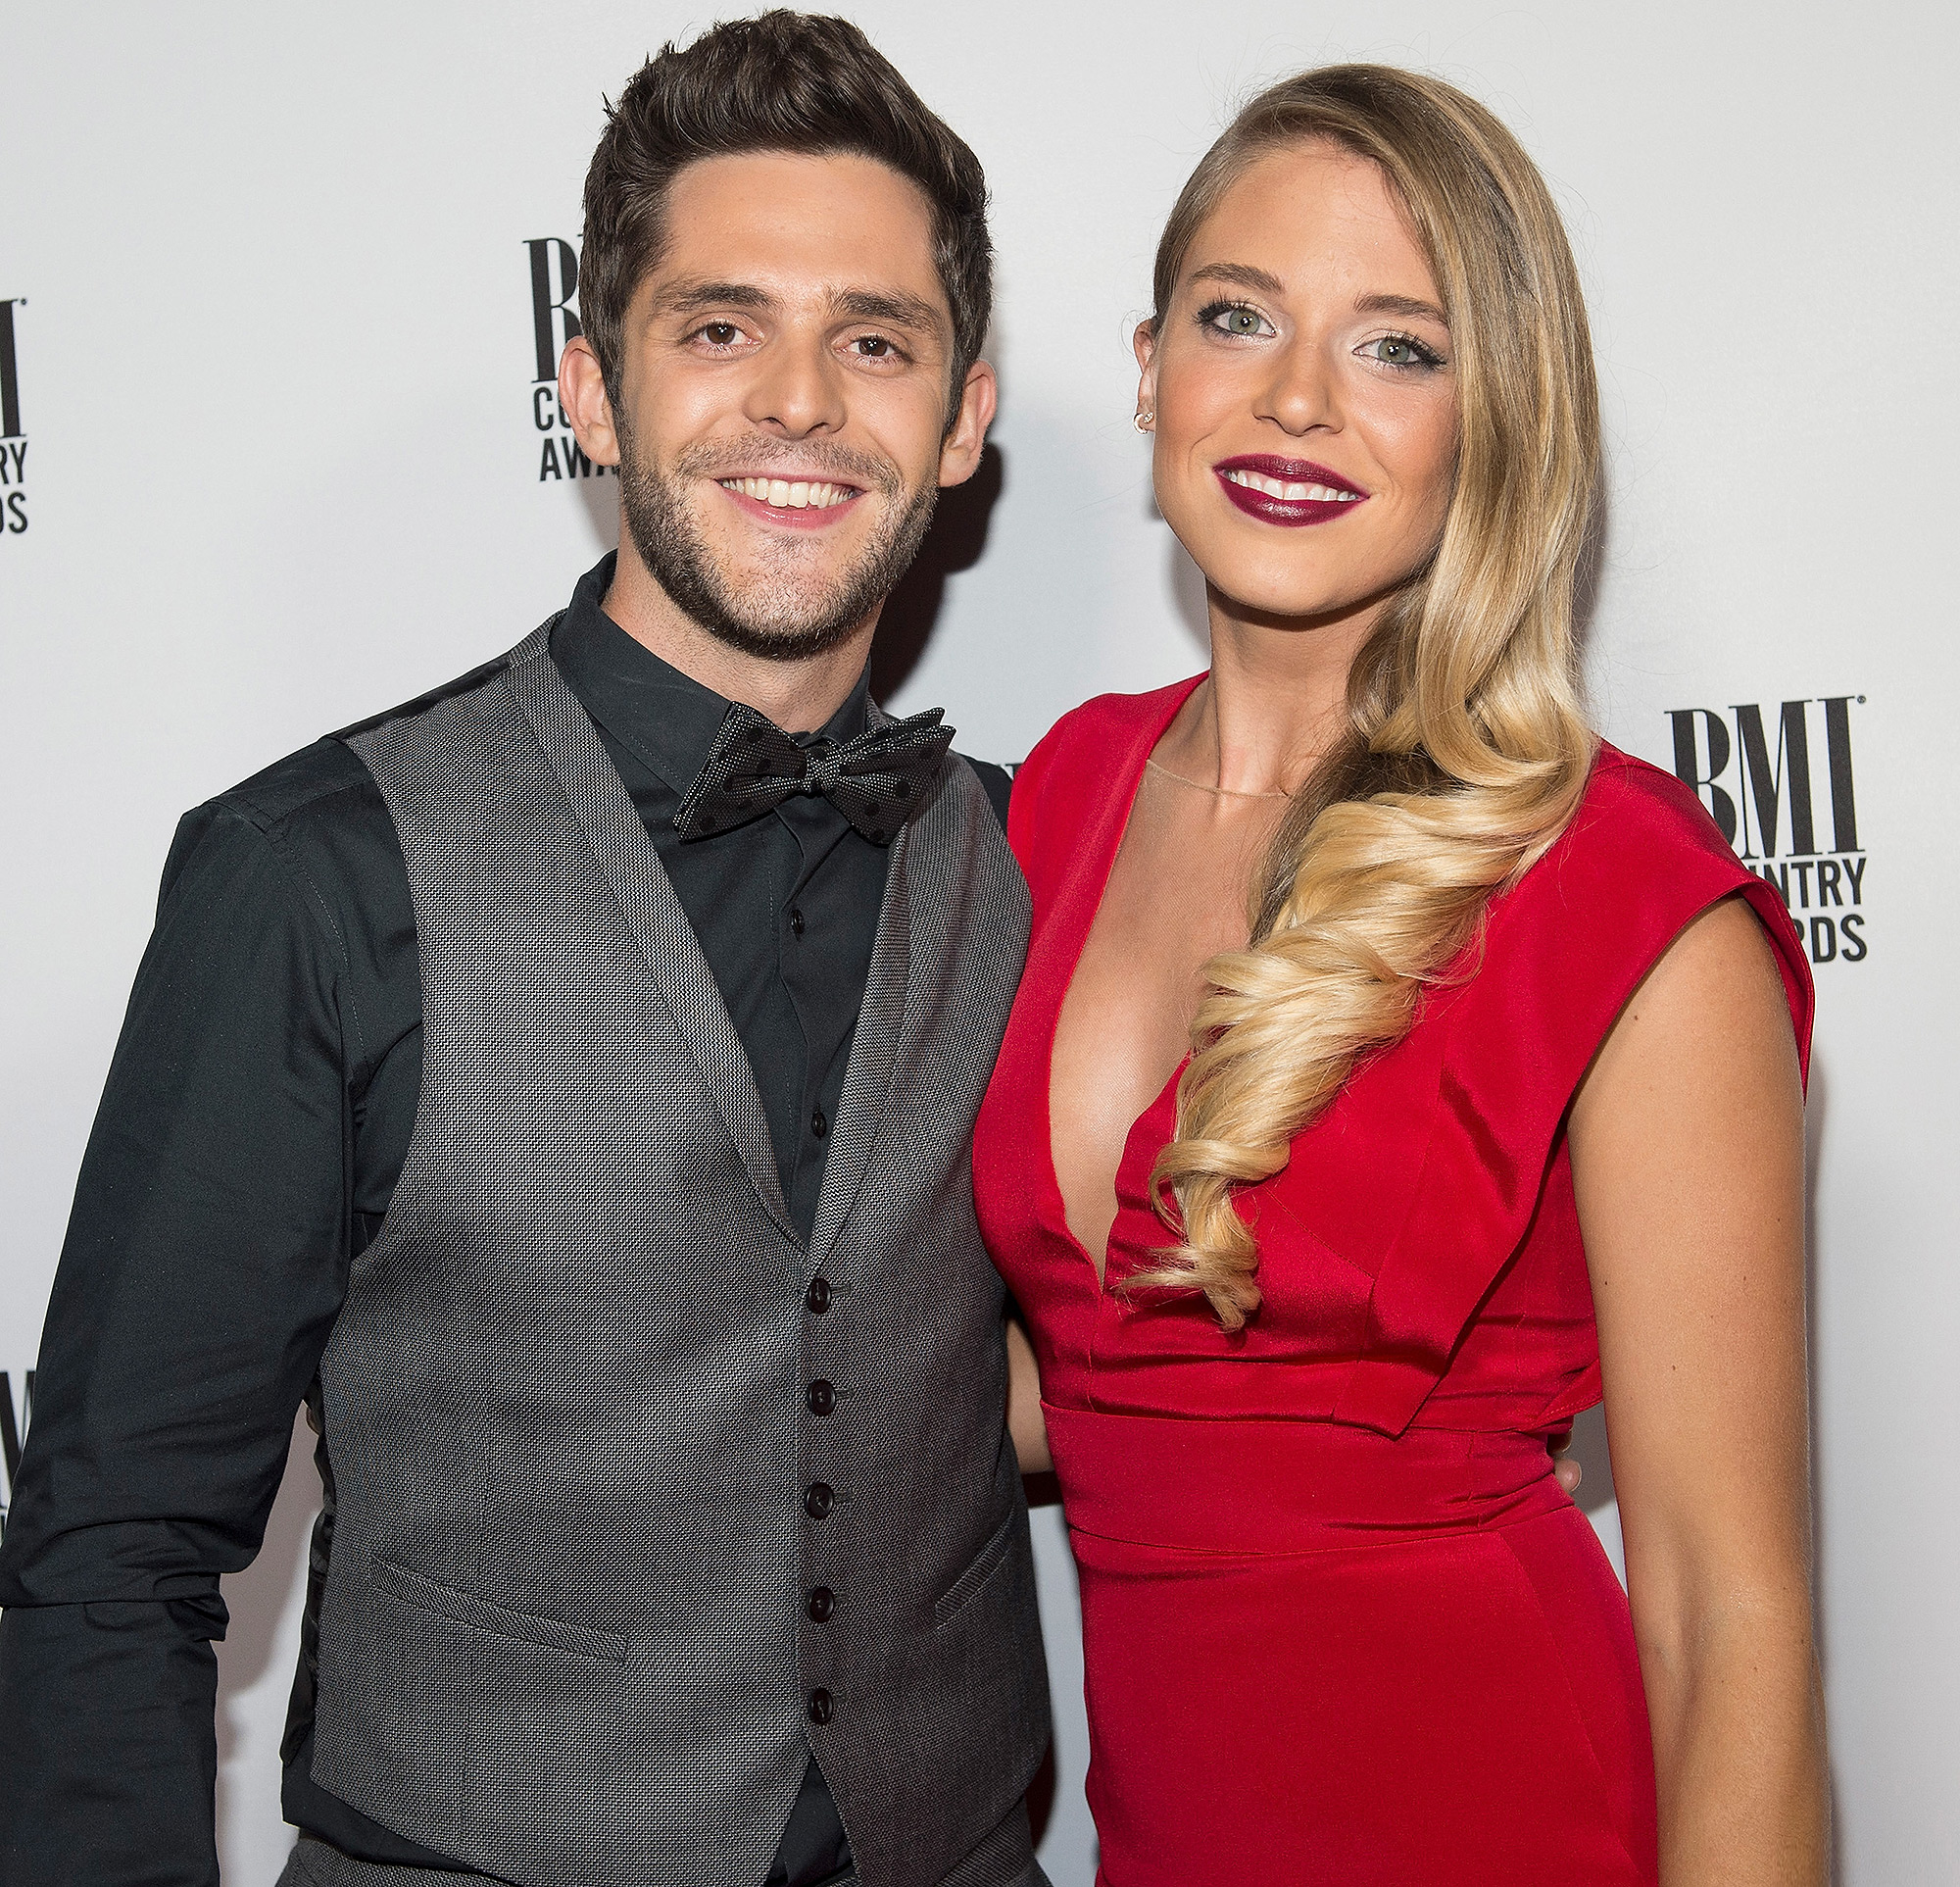 Inside Thomas Rhett & Wife Lauren's Sweet Love Story